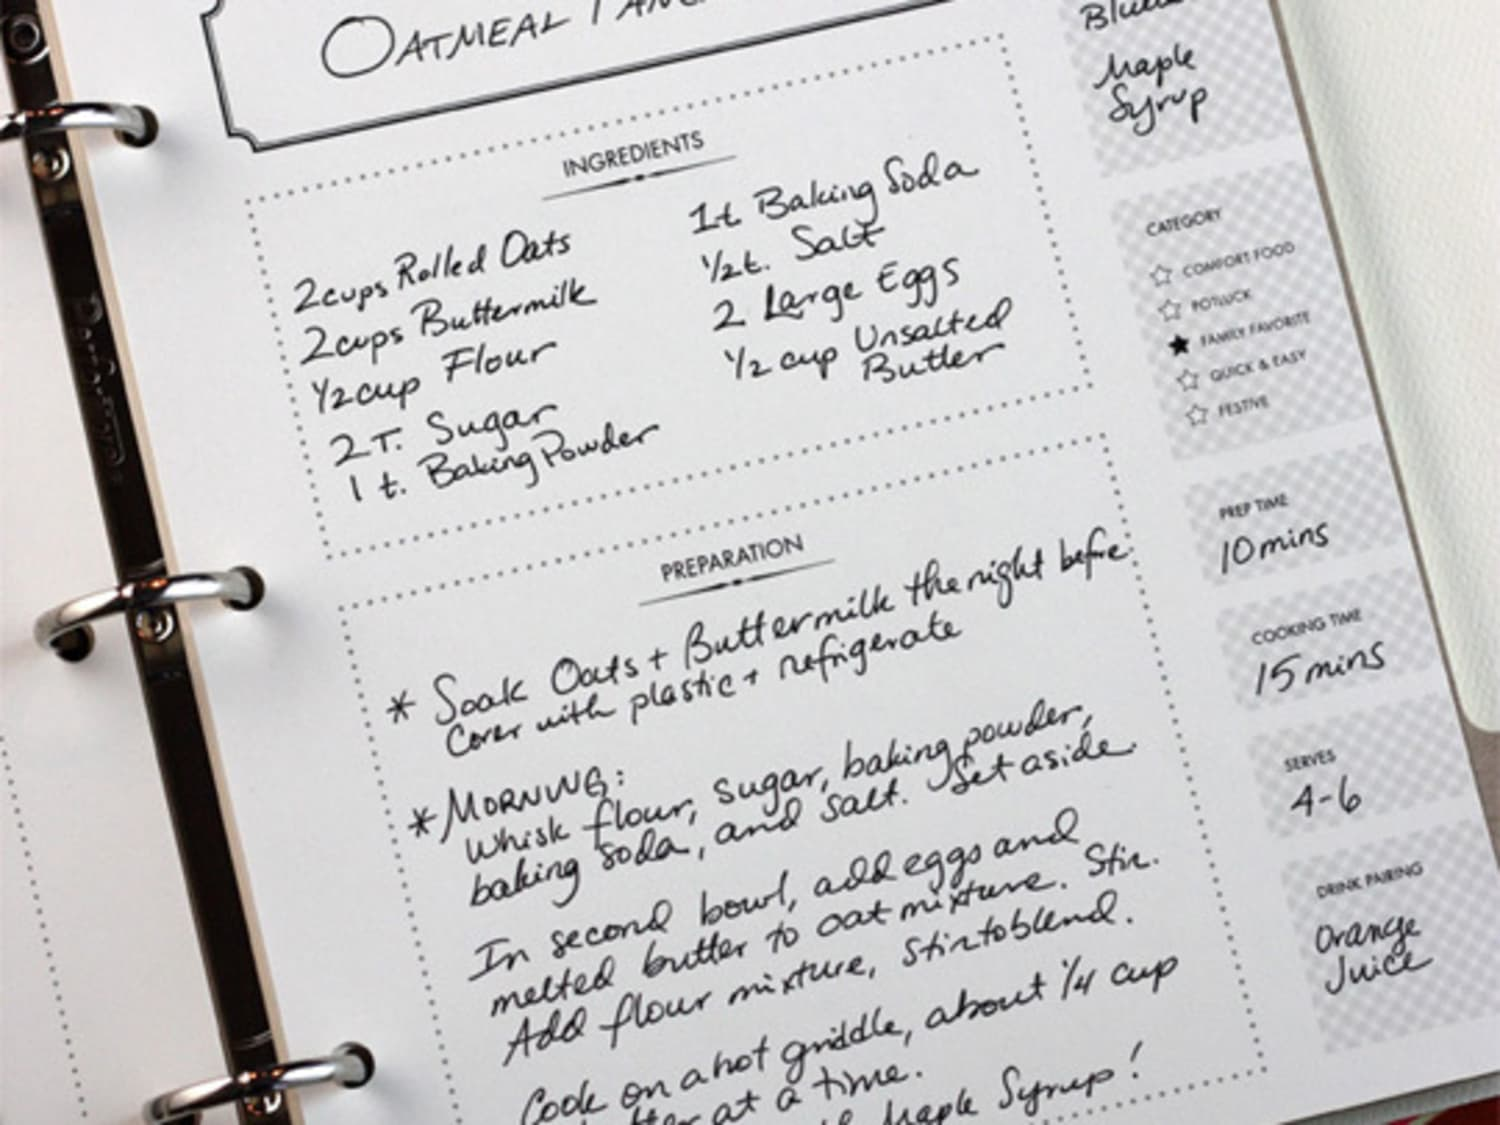 The 5 Best Ways to Organize Your Recipes in 2015 | Kitchn